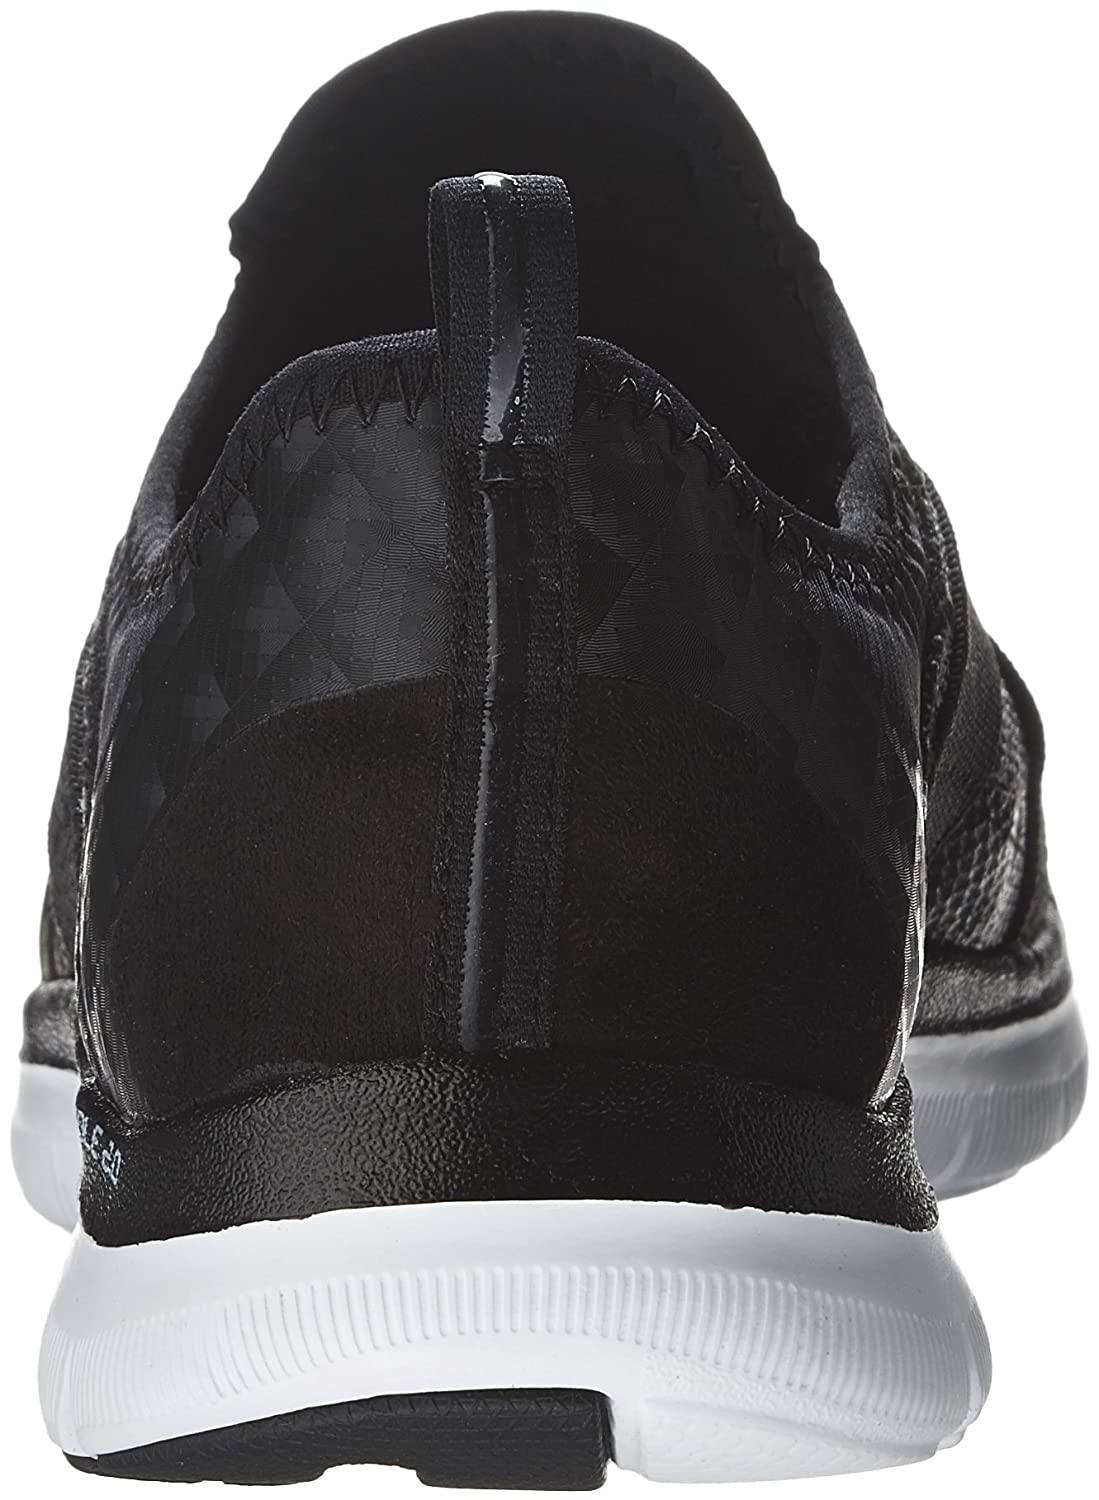 Skechers Damen Flex Appeal 2.0 New Image Sneakers Schwarz/Weiß